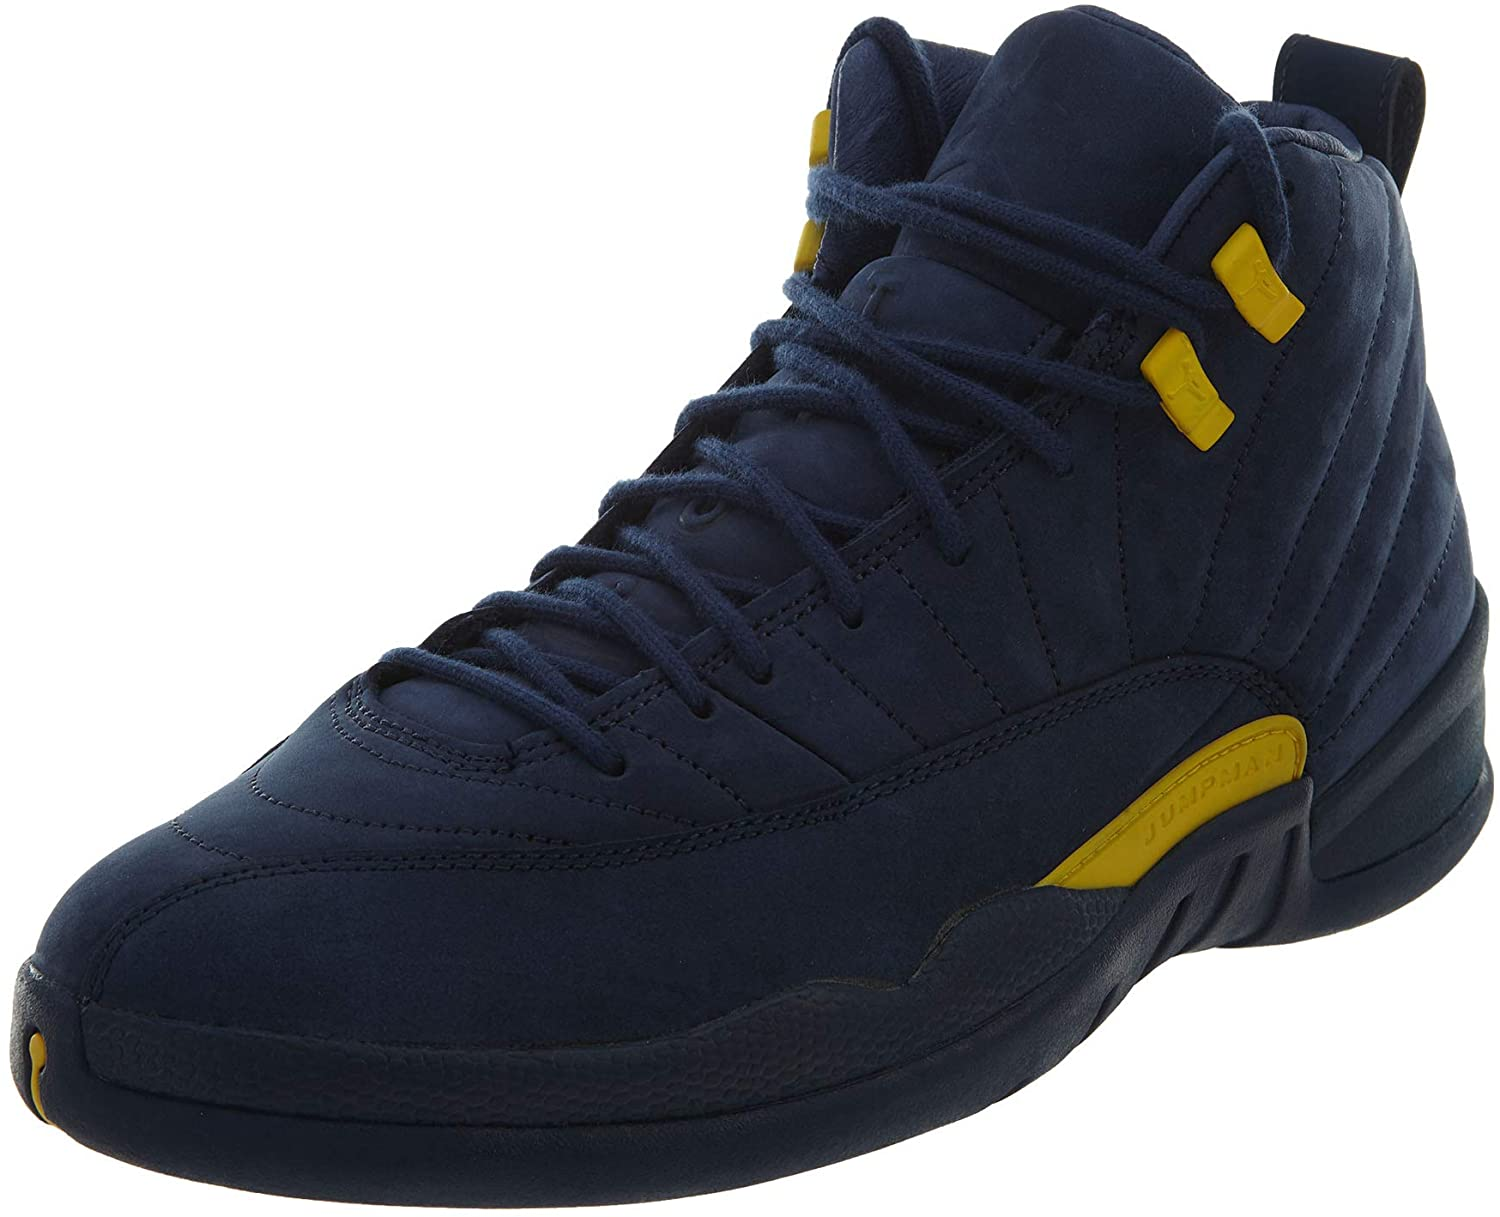 AIR JORDAN 12 RTR Michigan Nrg 'Michigan' - Bq3180-407 - Size